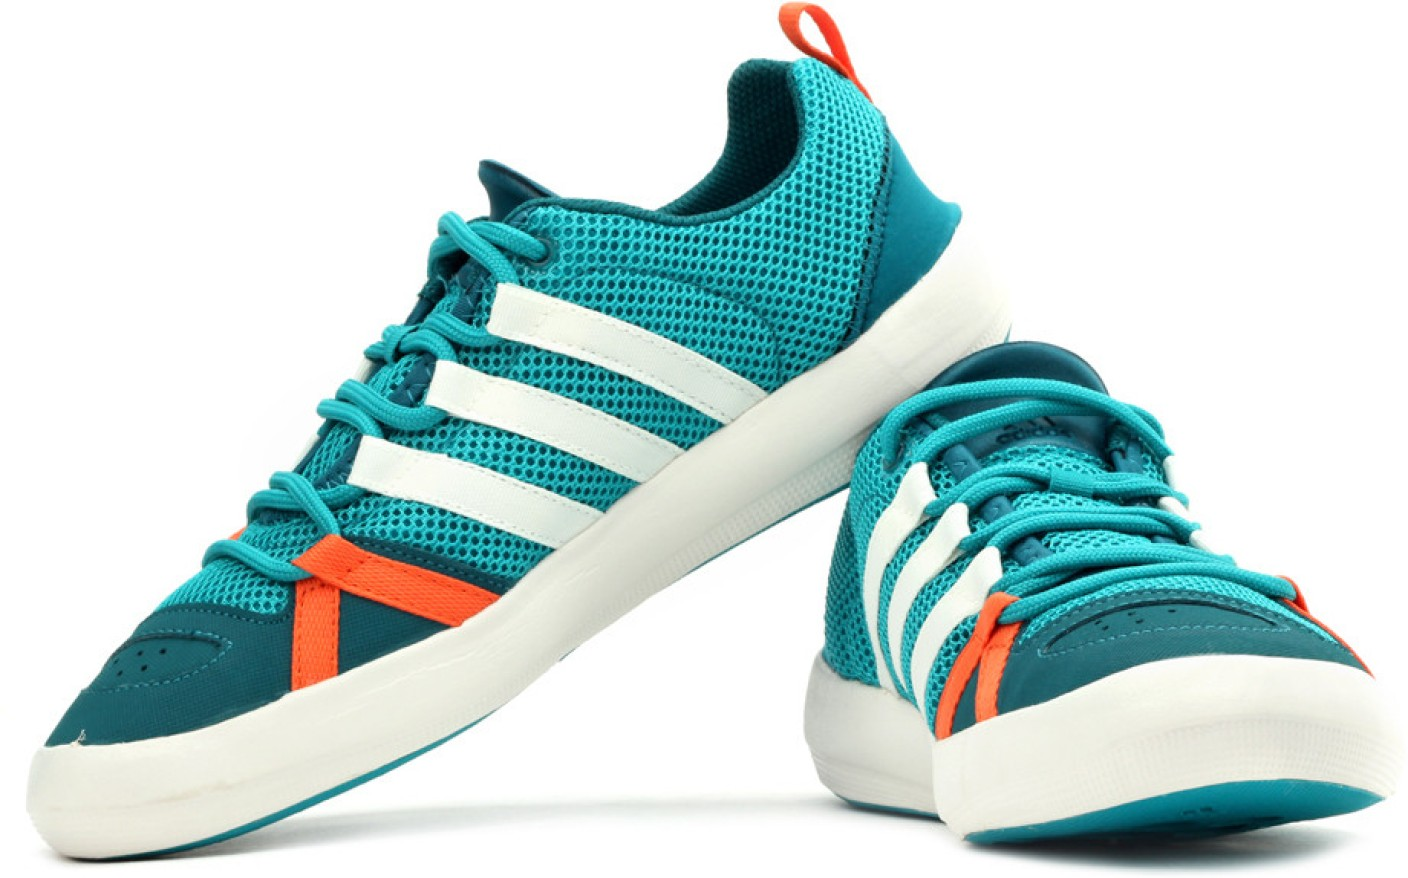 Adidas Climacool Boat Lace Shoes Online India